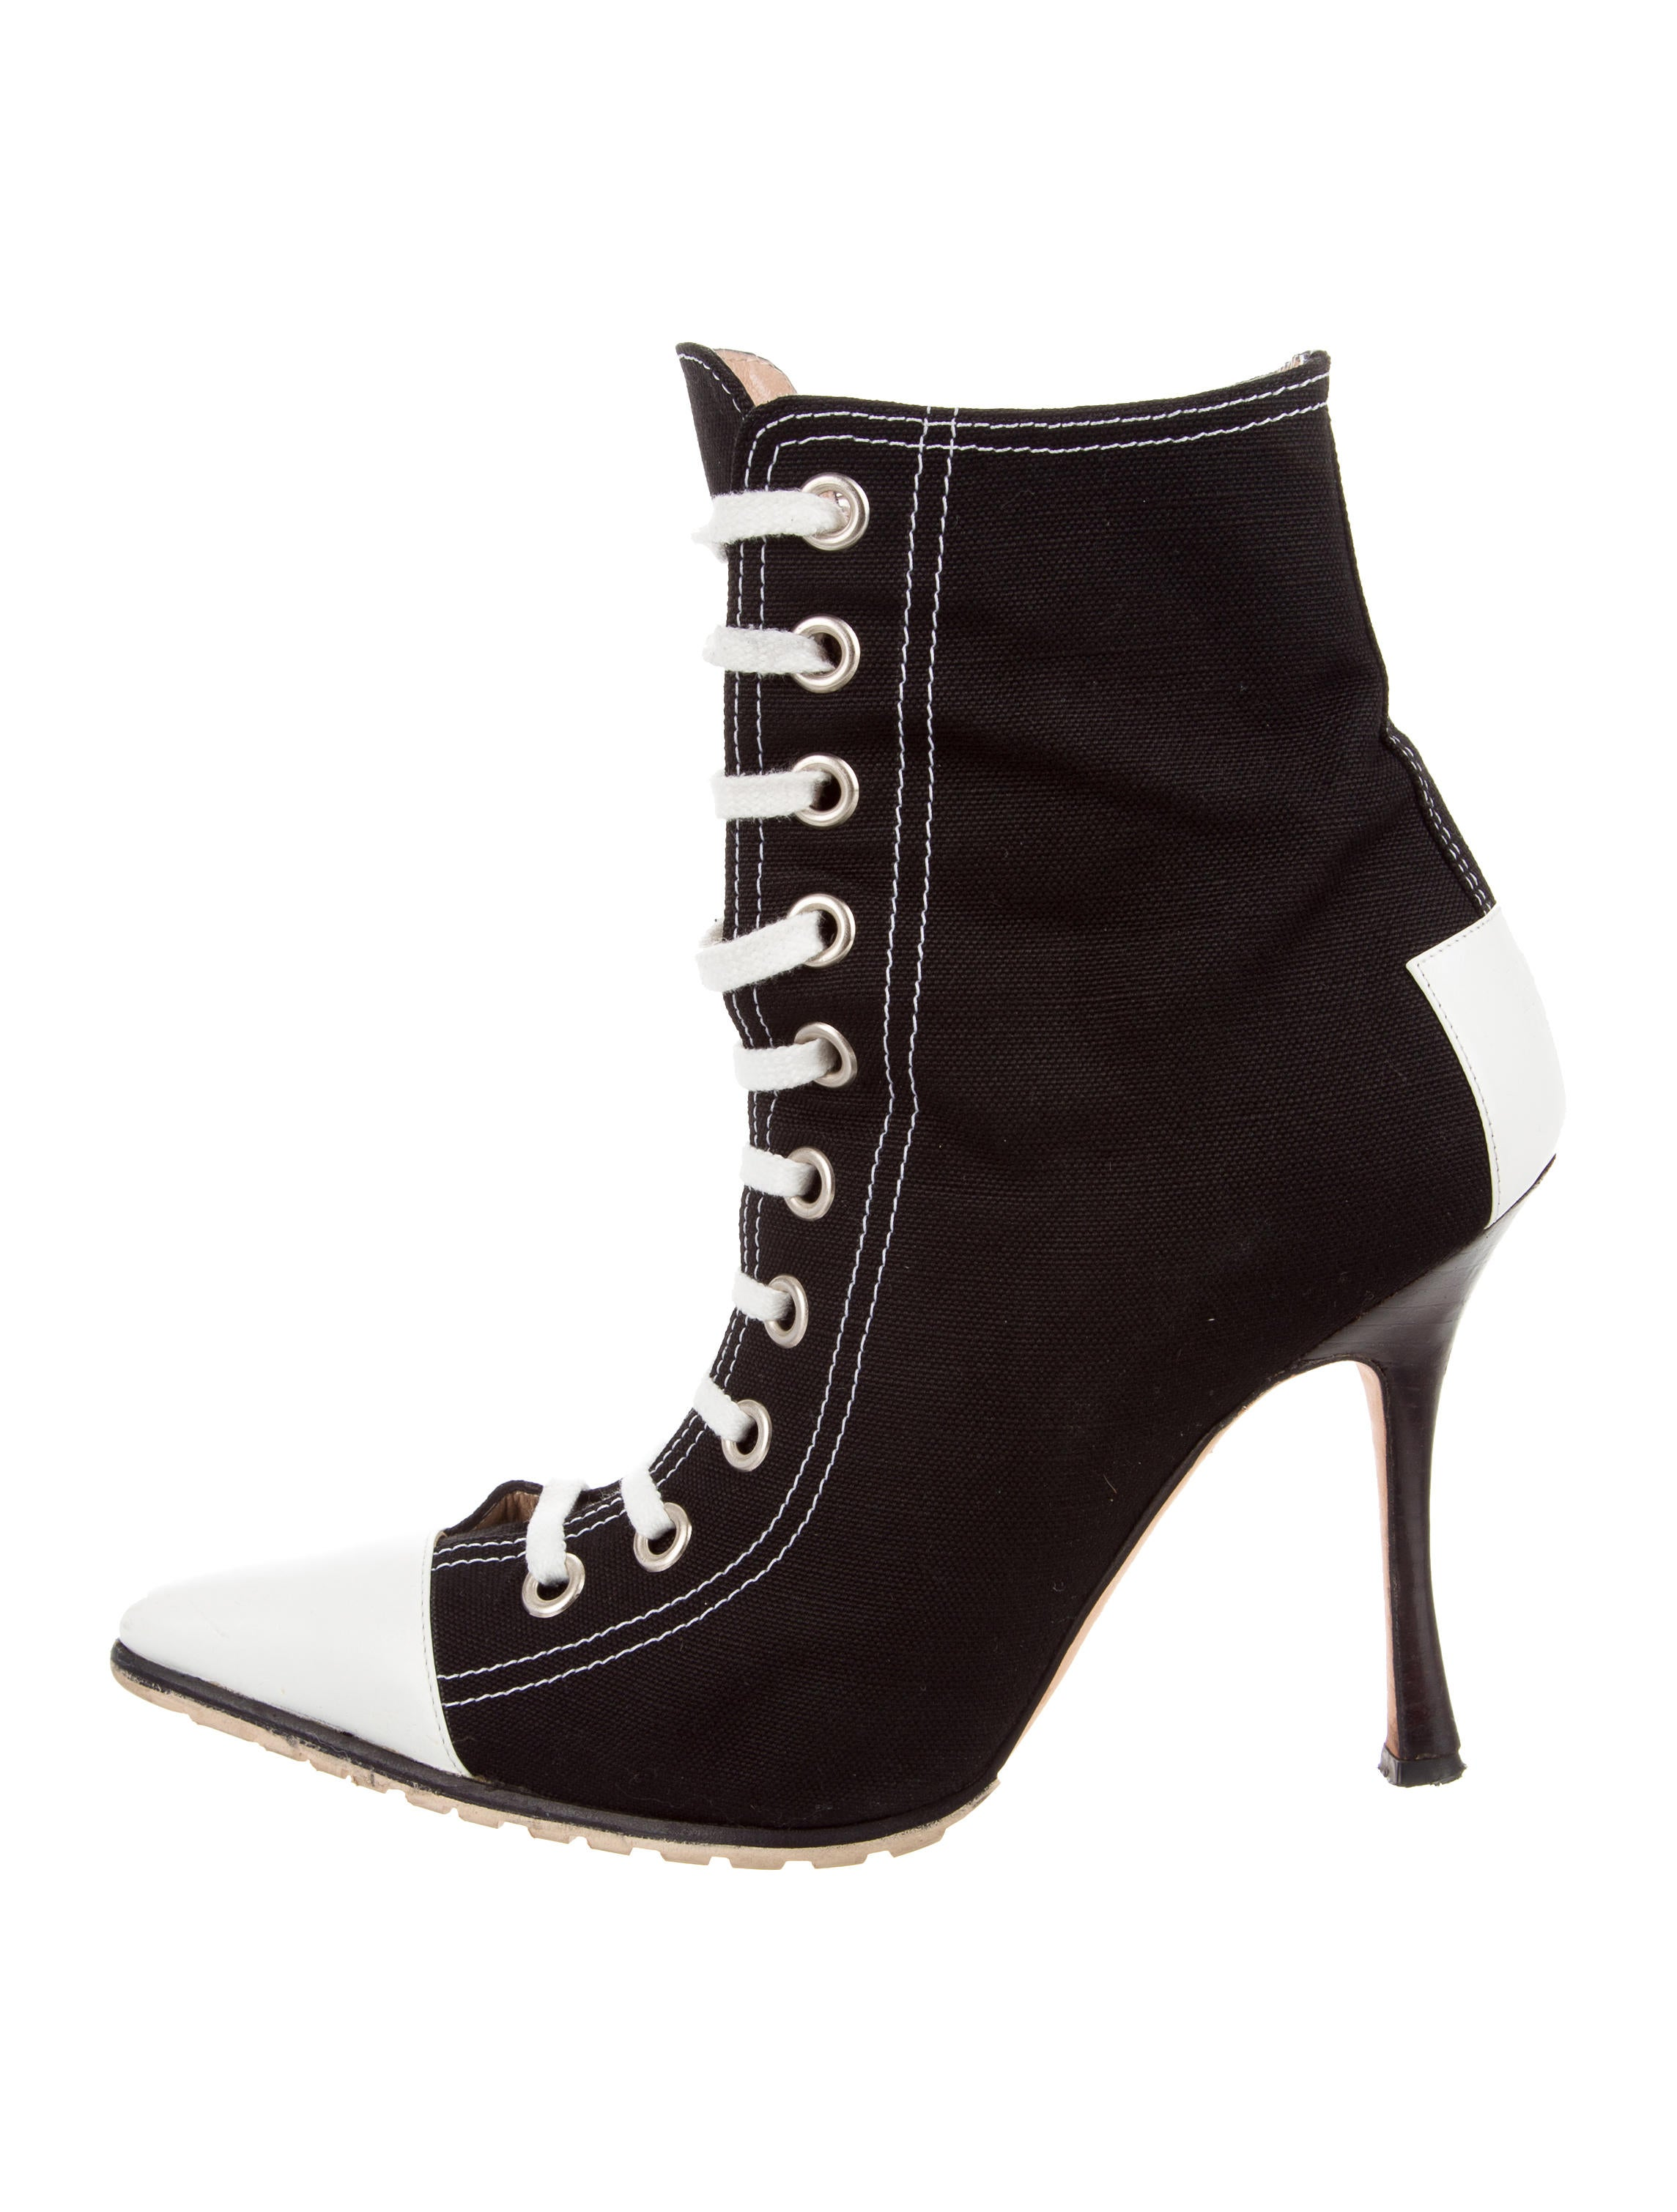 the cheapest online Manolo Blahnik Canvas Lace-Up Boots buy cheap eastbay free shipping amazing price CFtyD